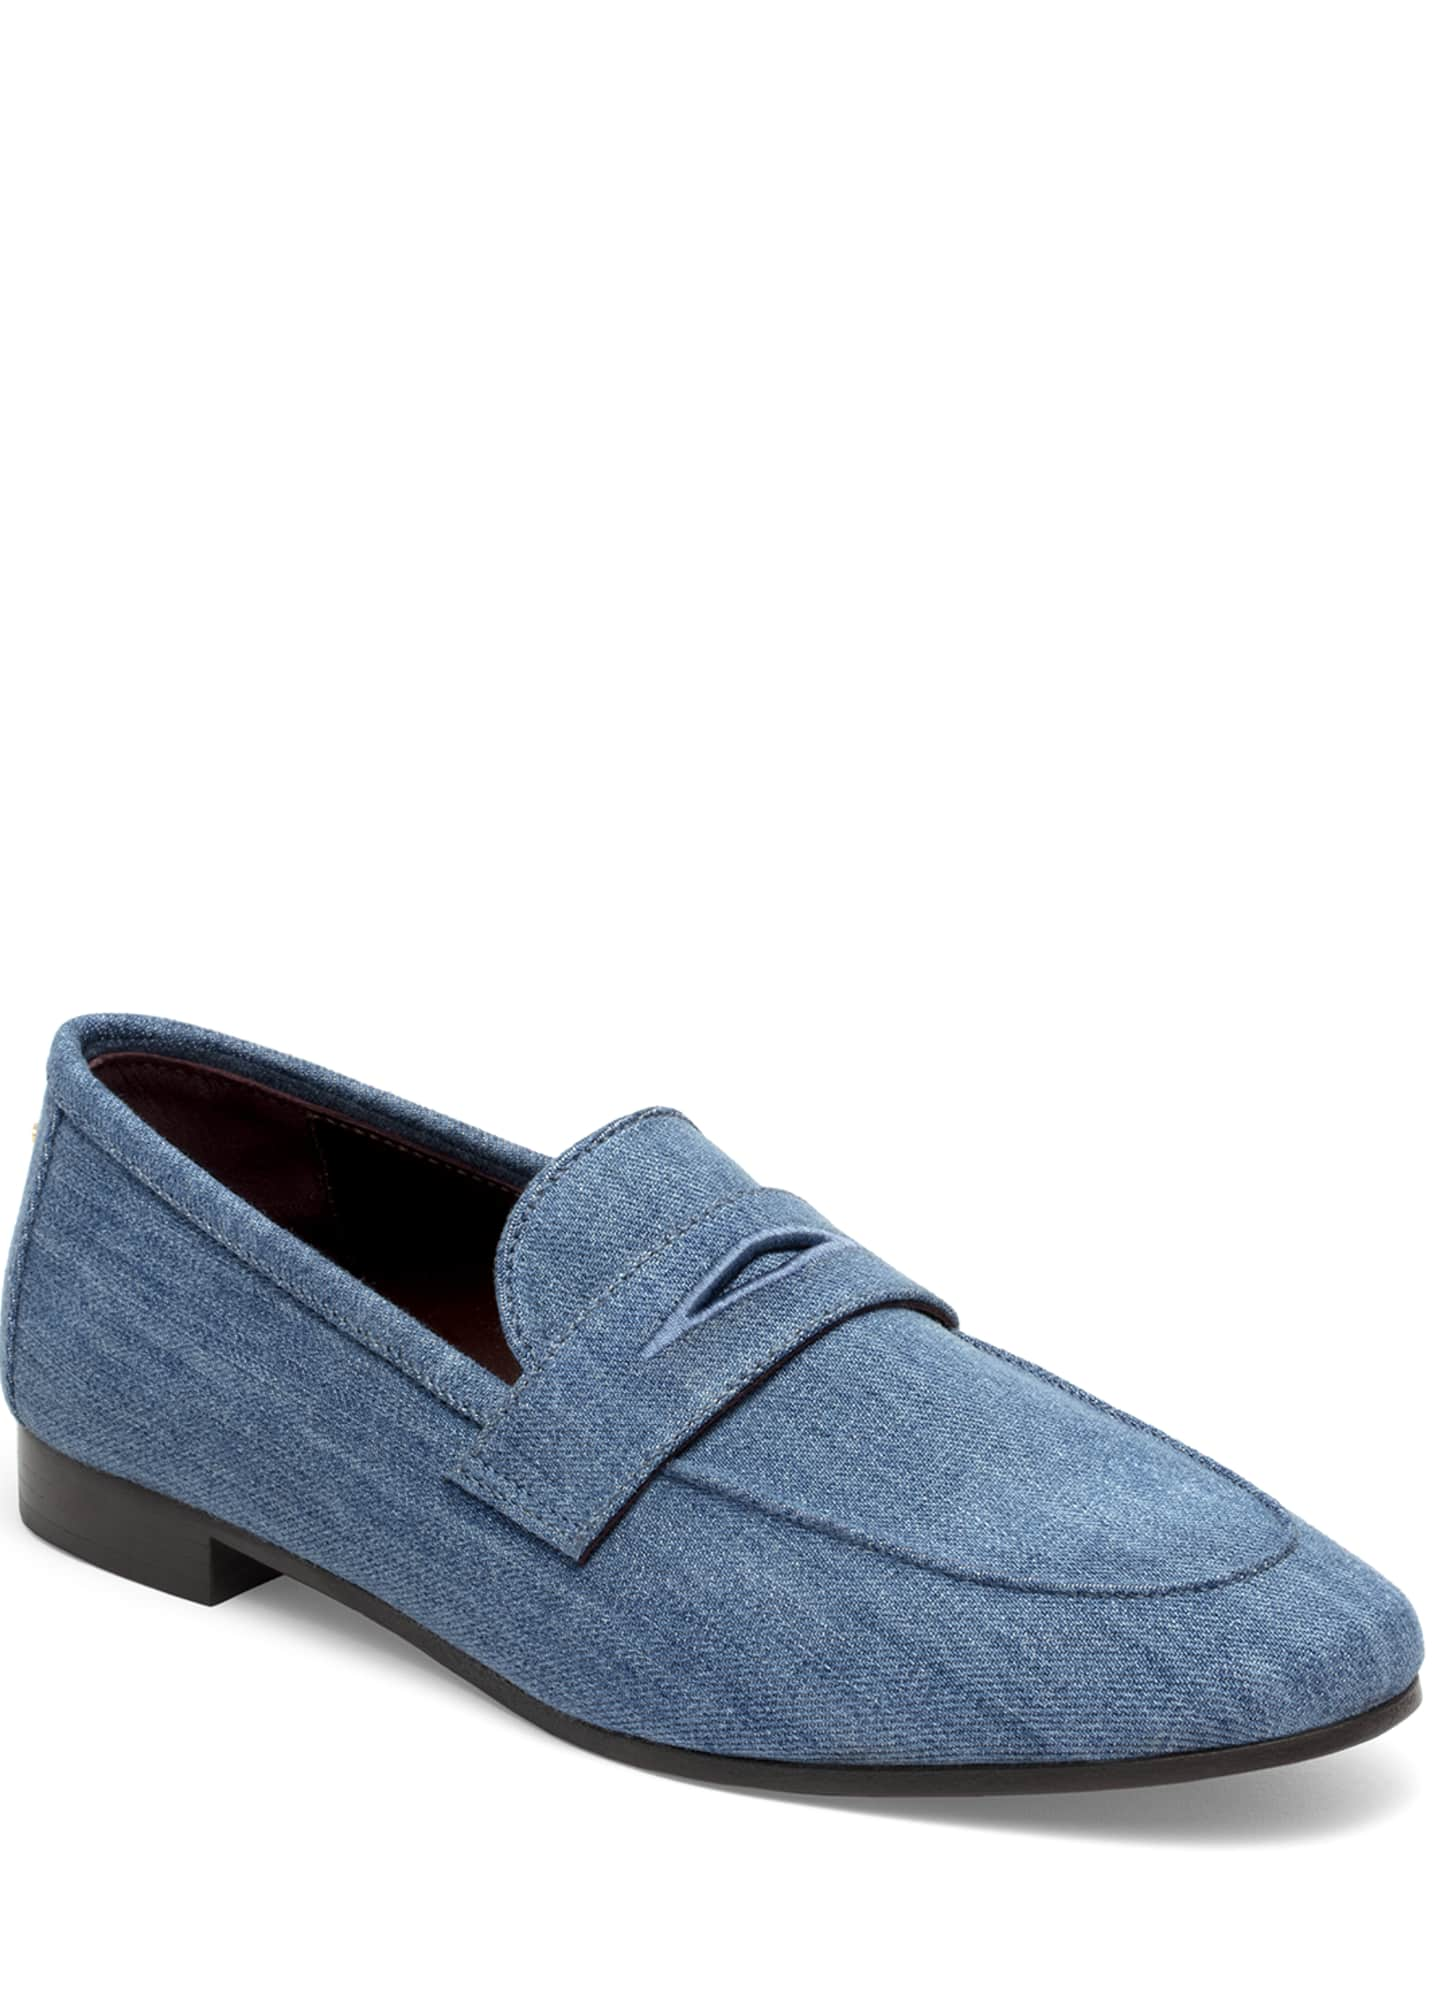 Bougeotte Flaneur Denim Penny Loafers